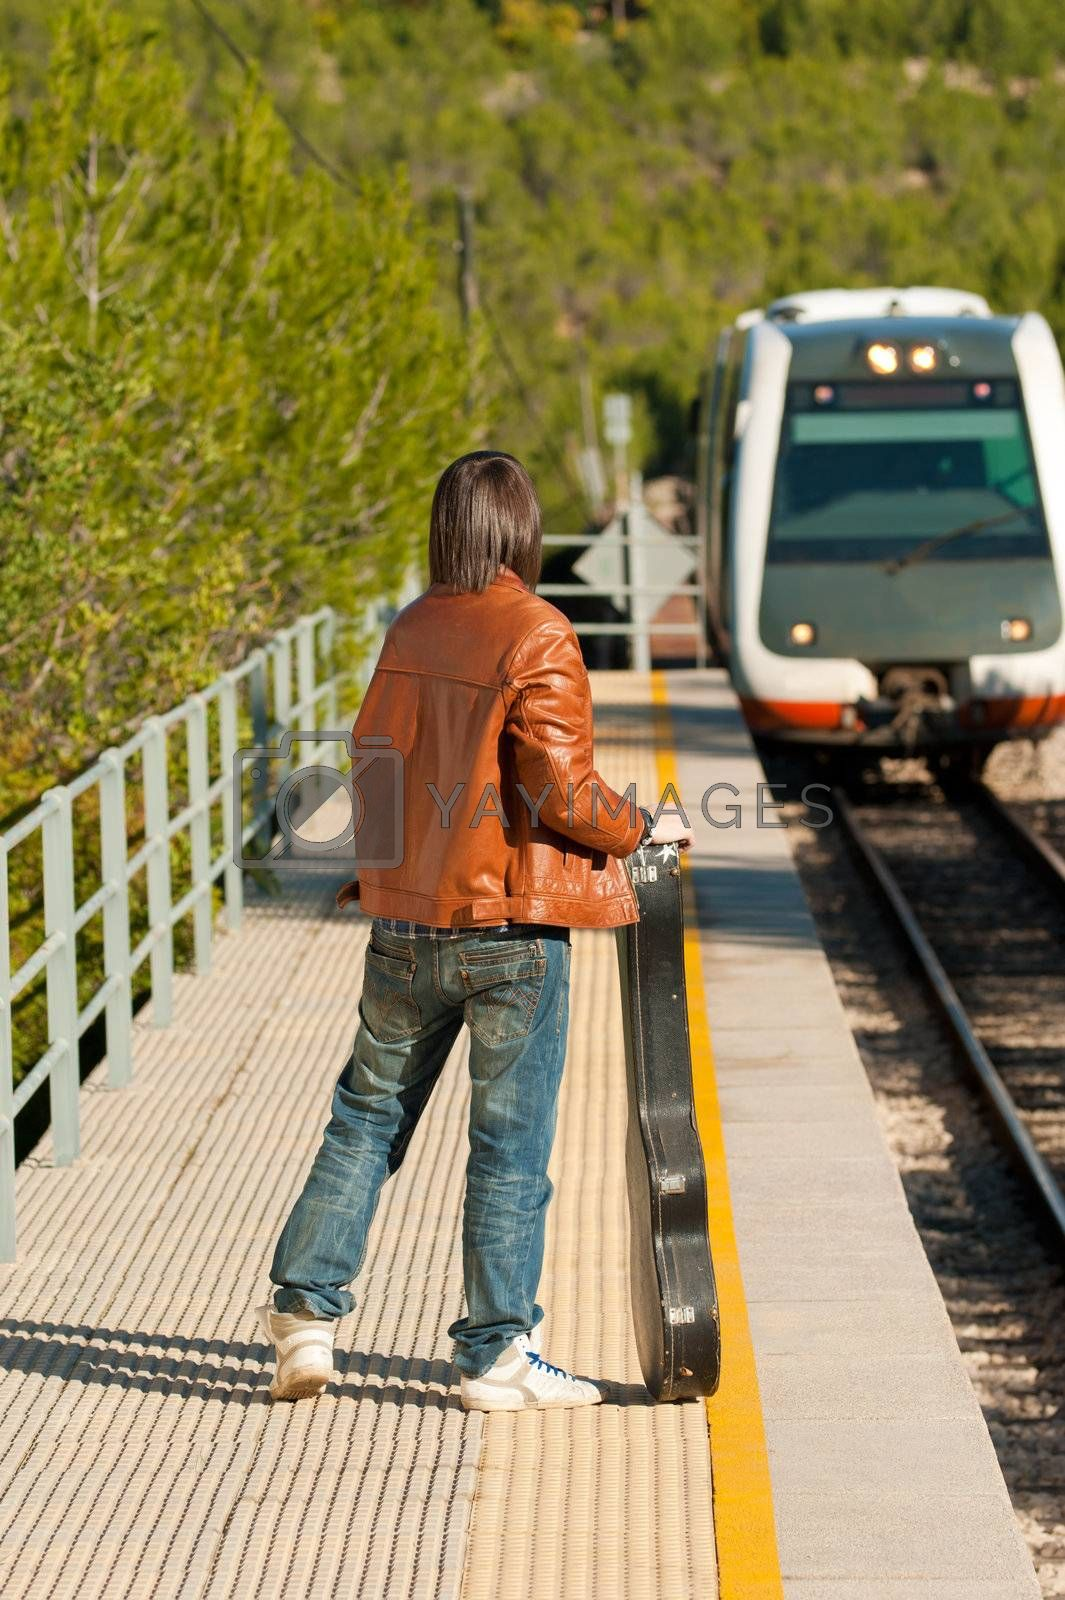 Commuter about to board an arriving train